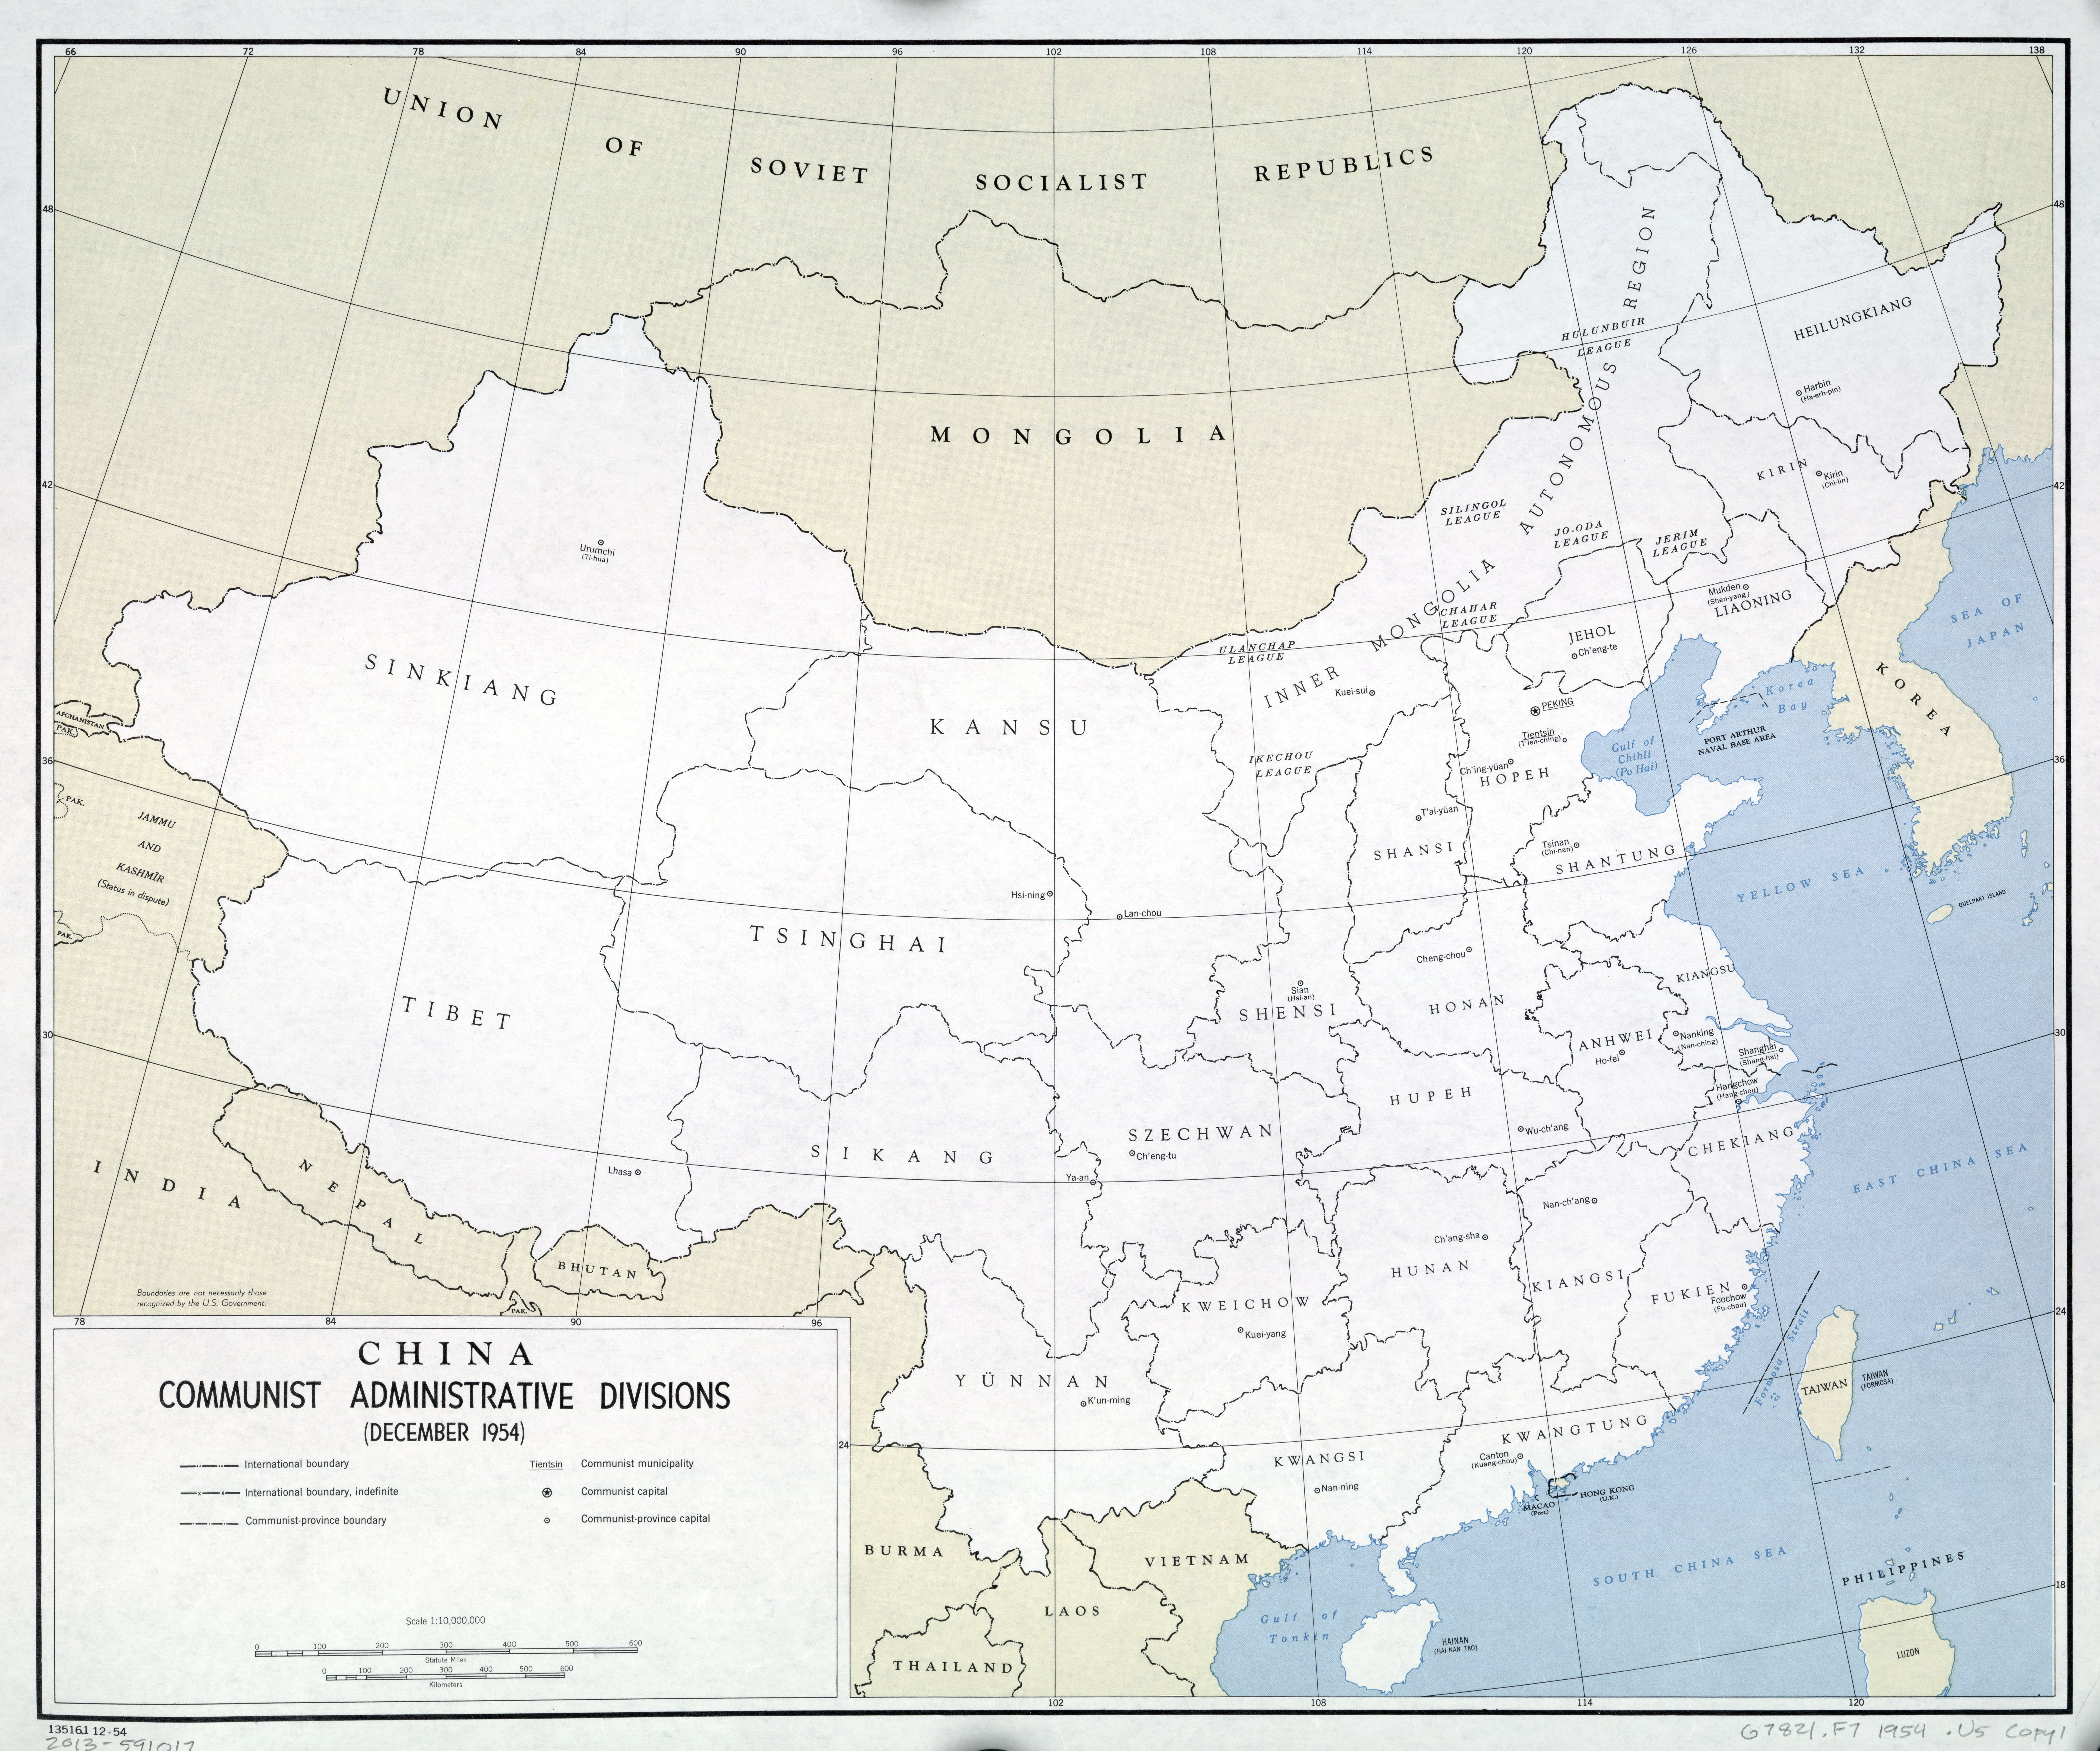 Large scale administrative divisions map of Communist China 1954